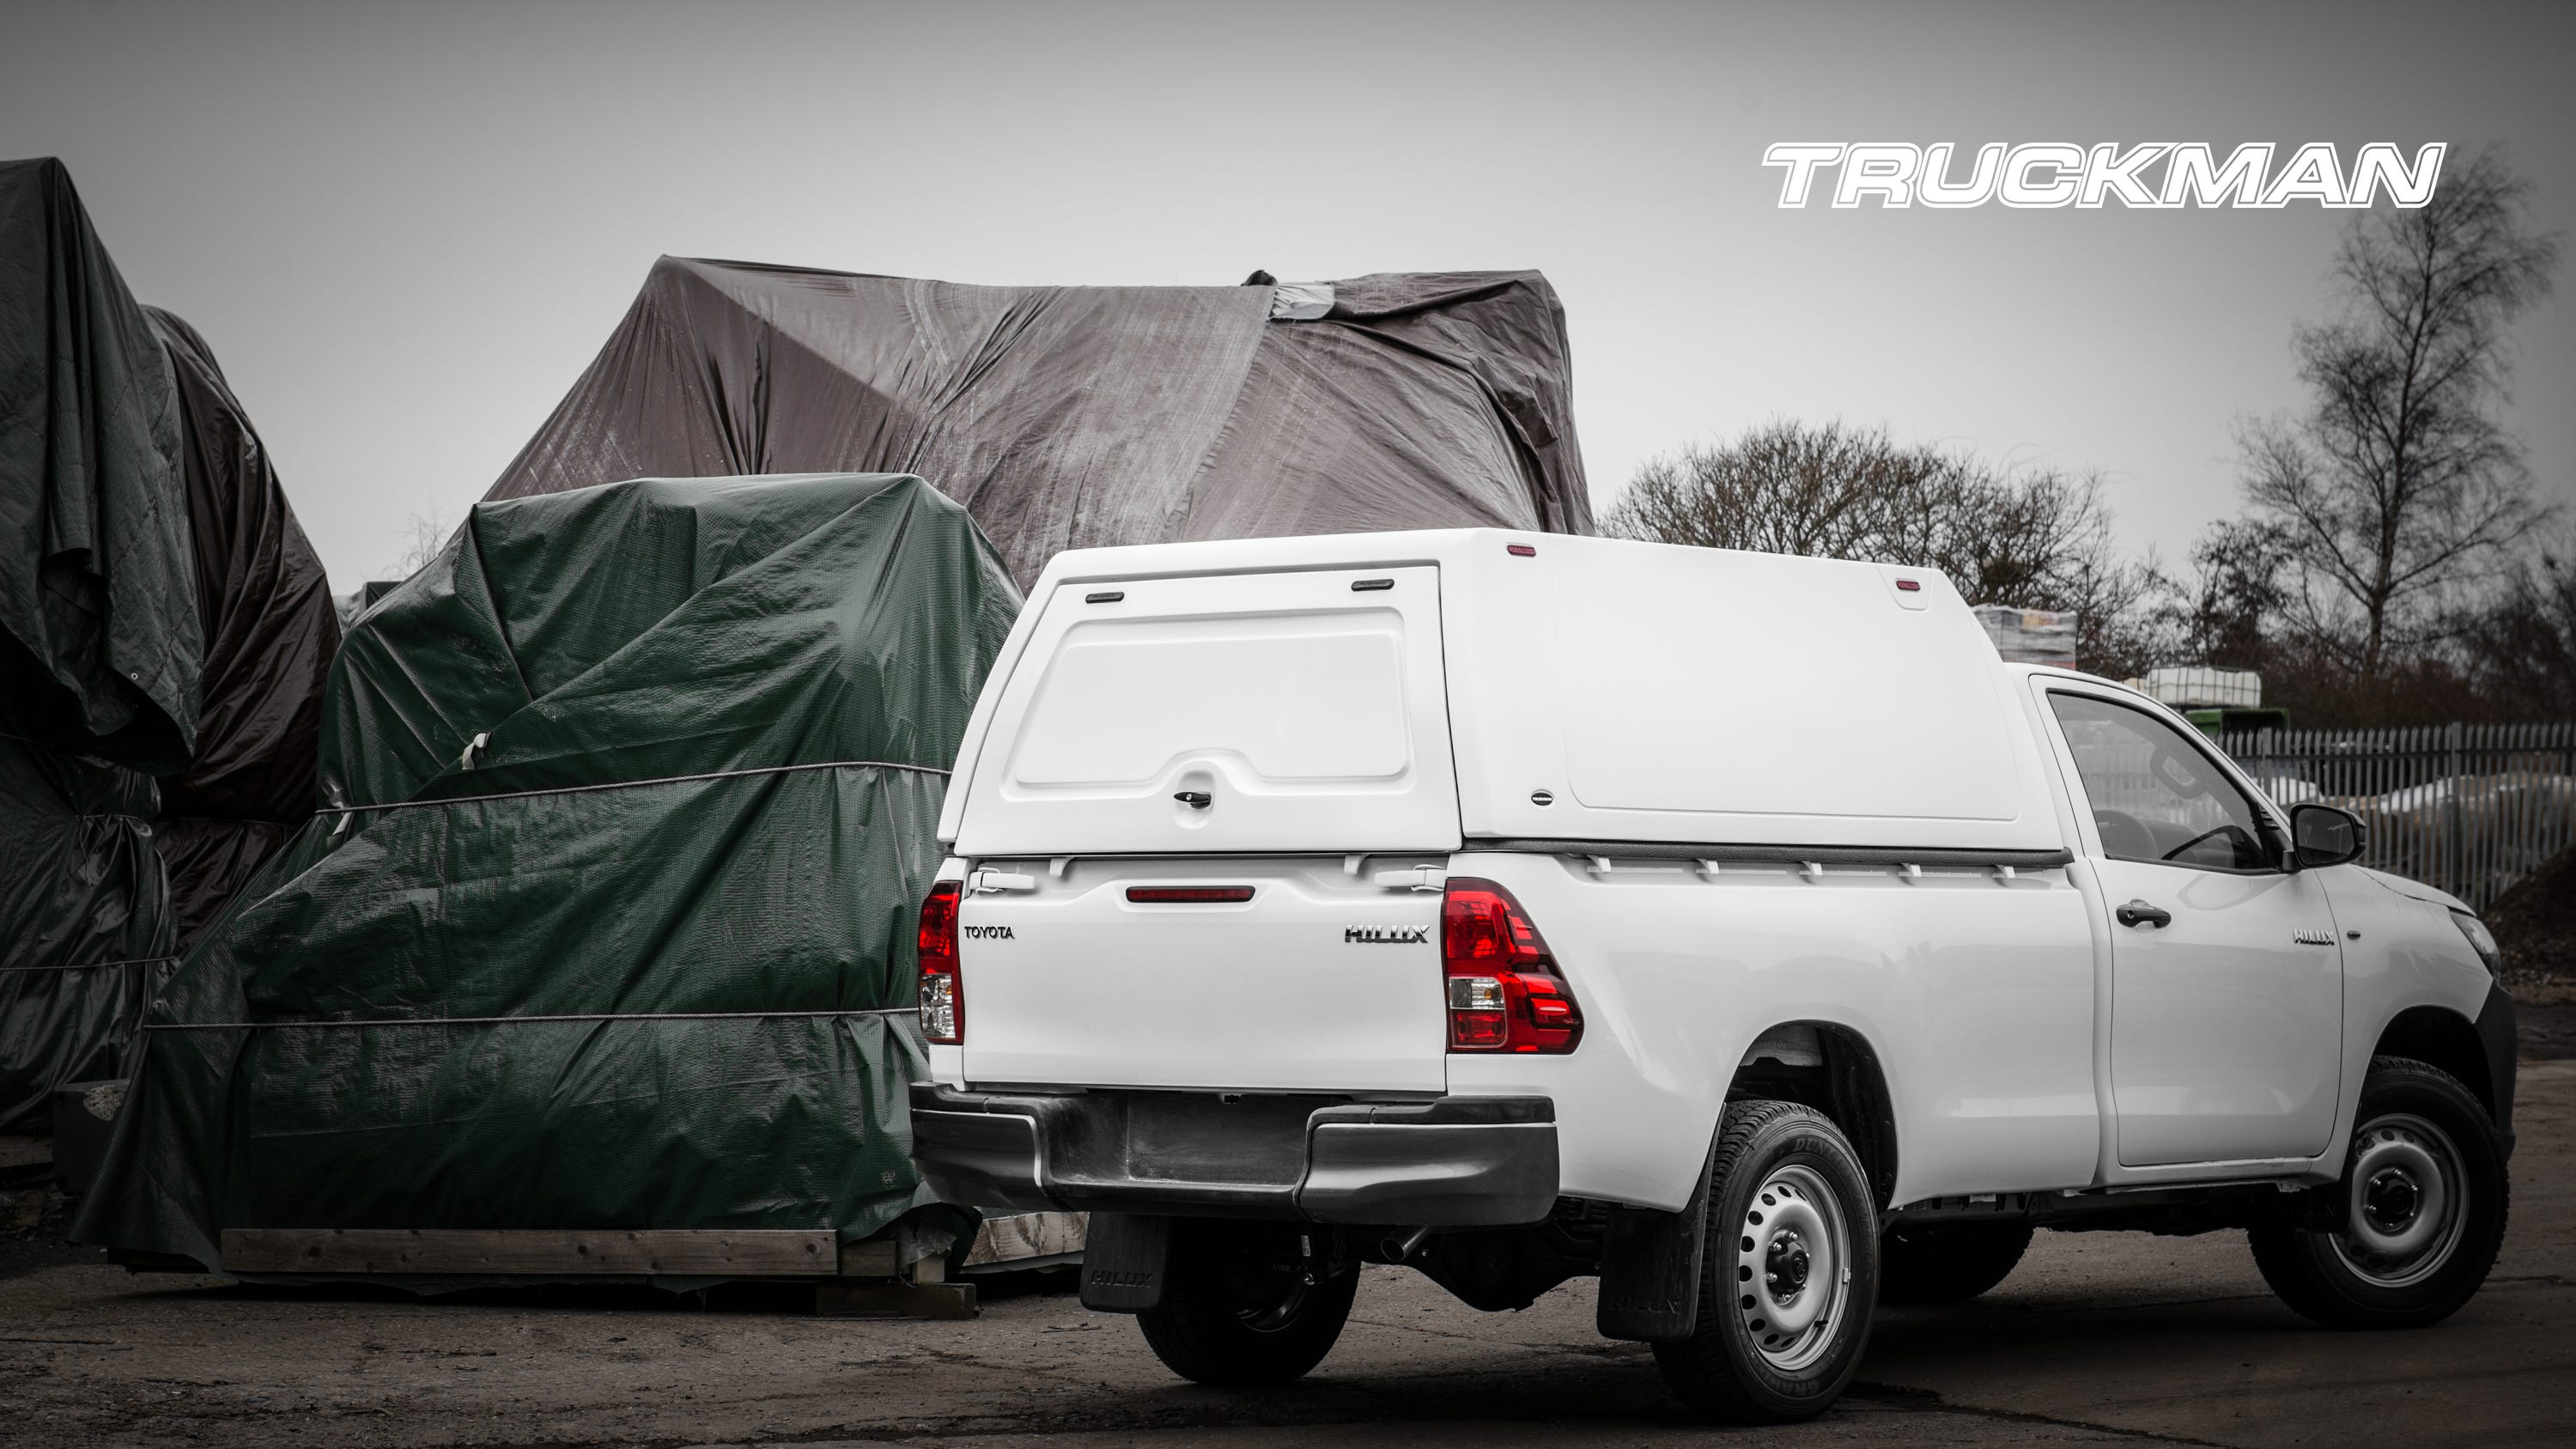 Toyota Hilux Single Cab Fitted With a Truckman Classic Hardtop Canopy (Landscape)